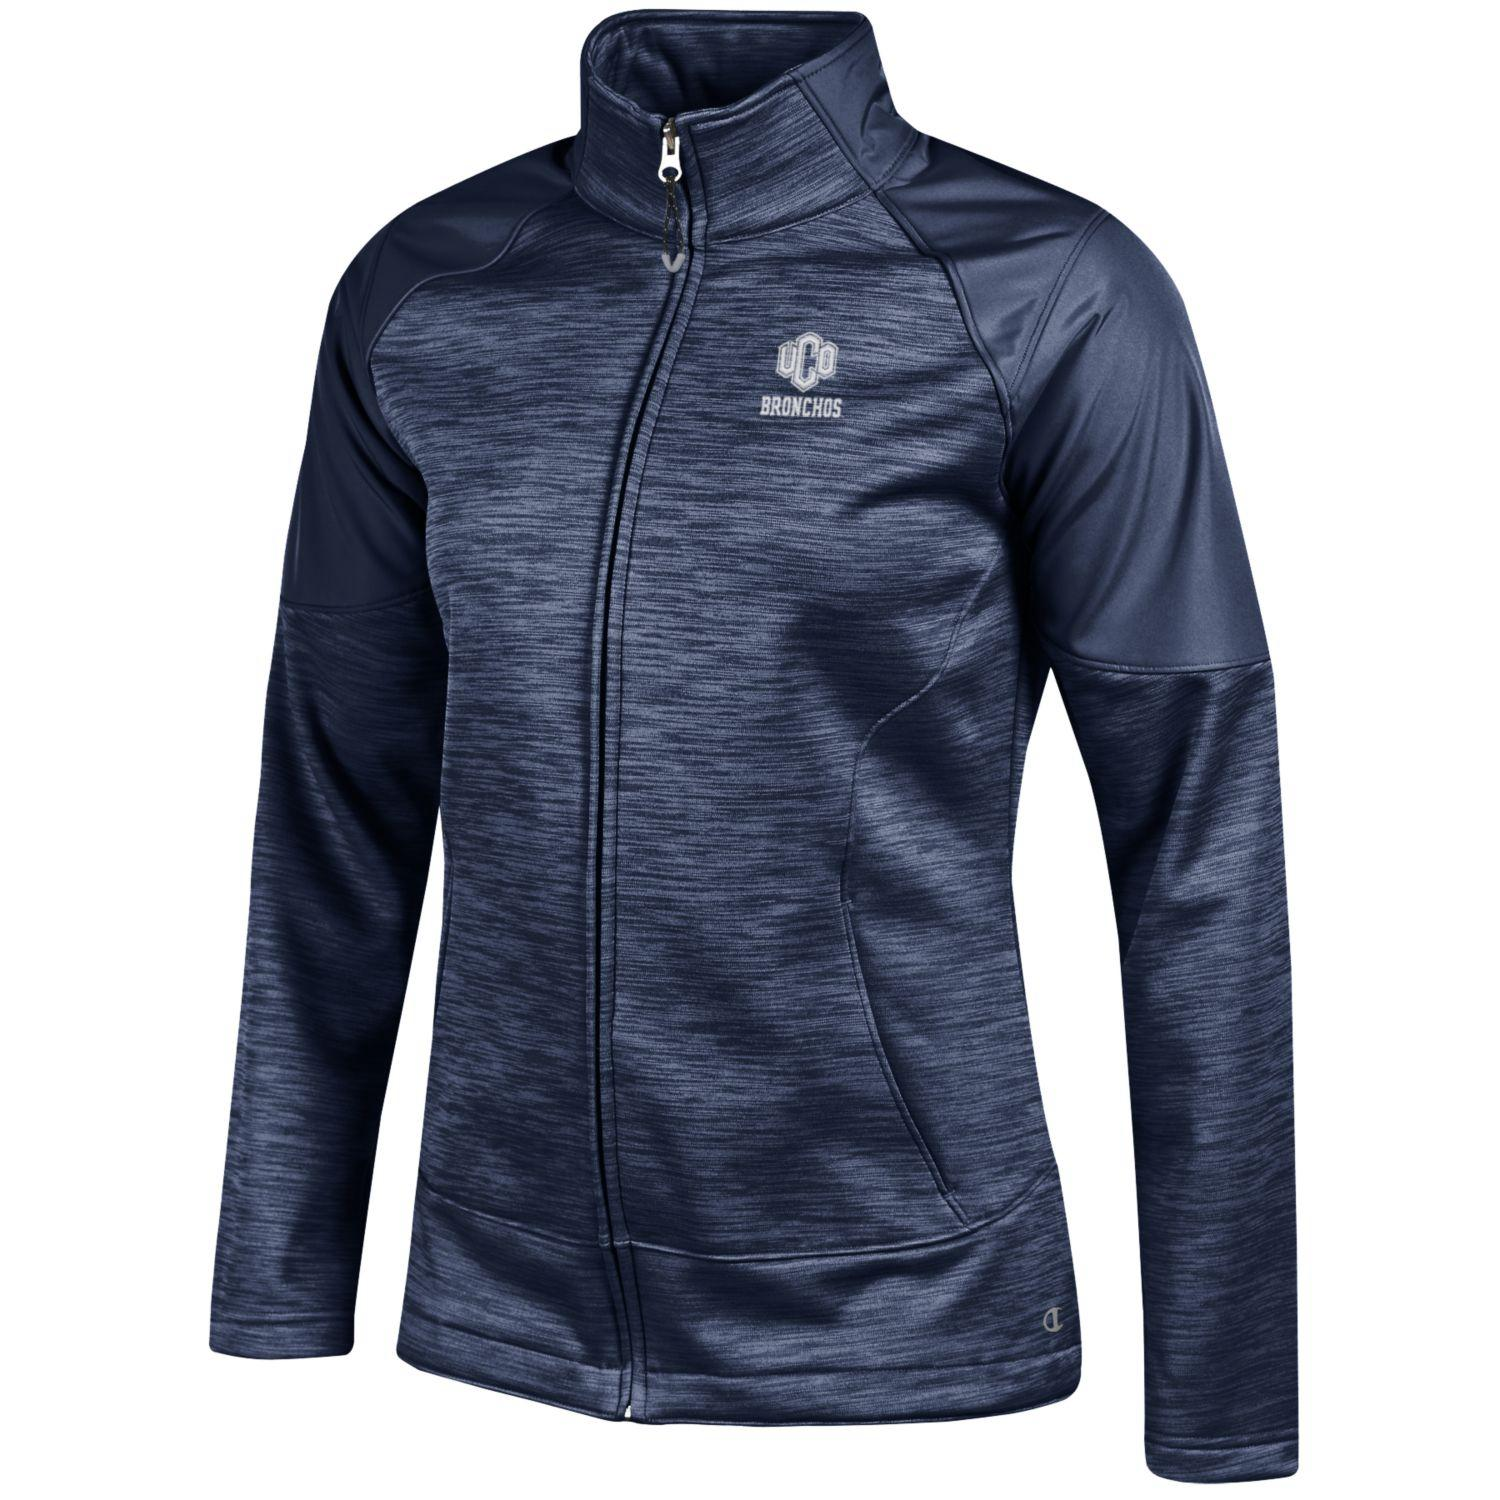 Women's UCO Cascade Jacket